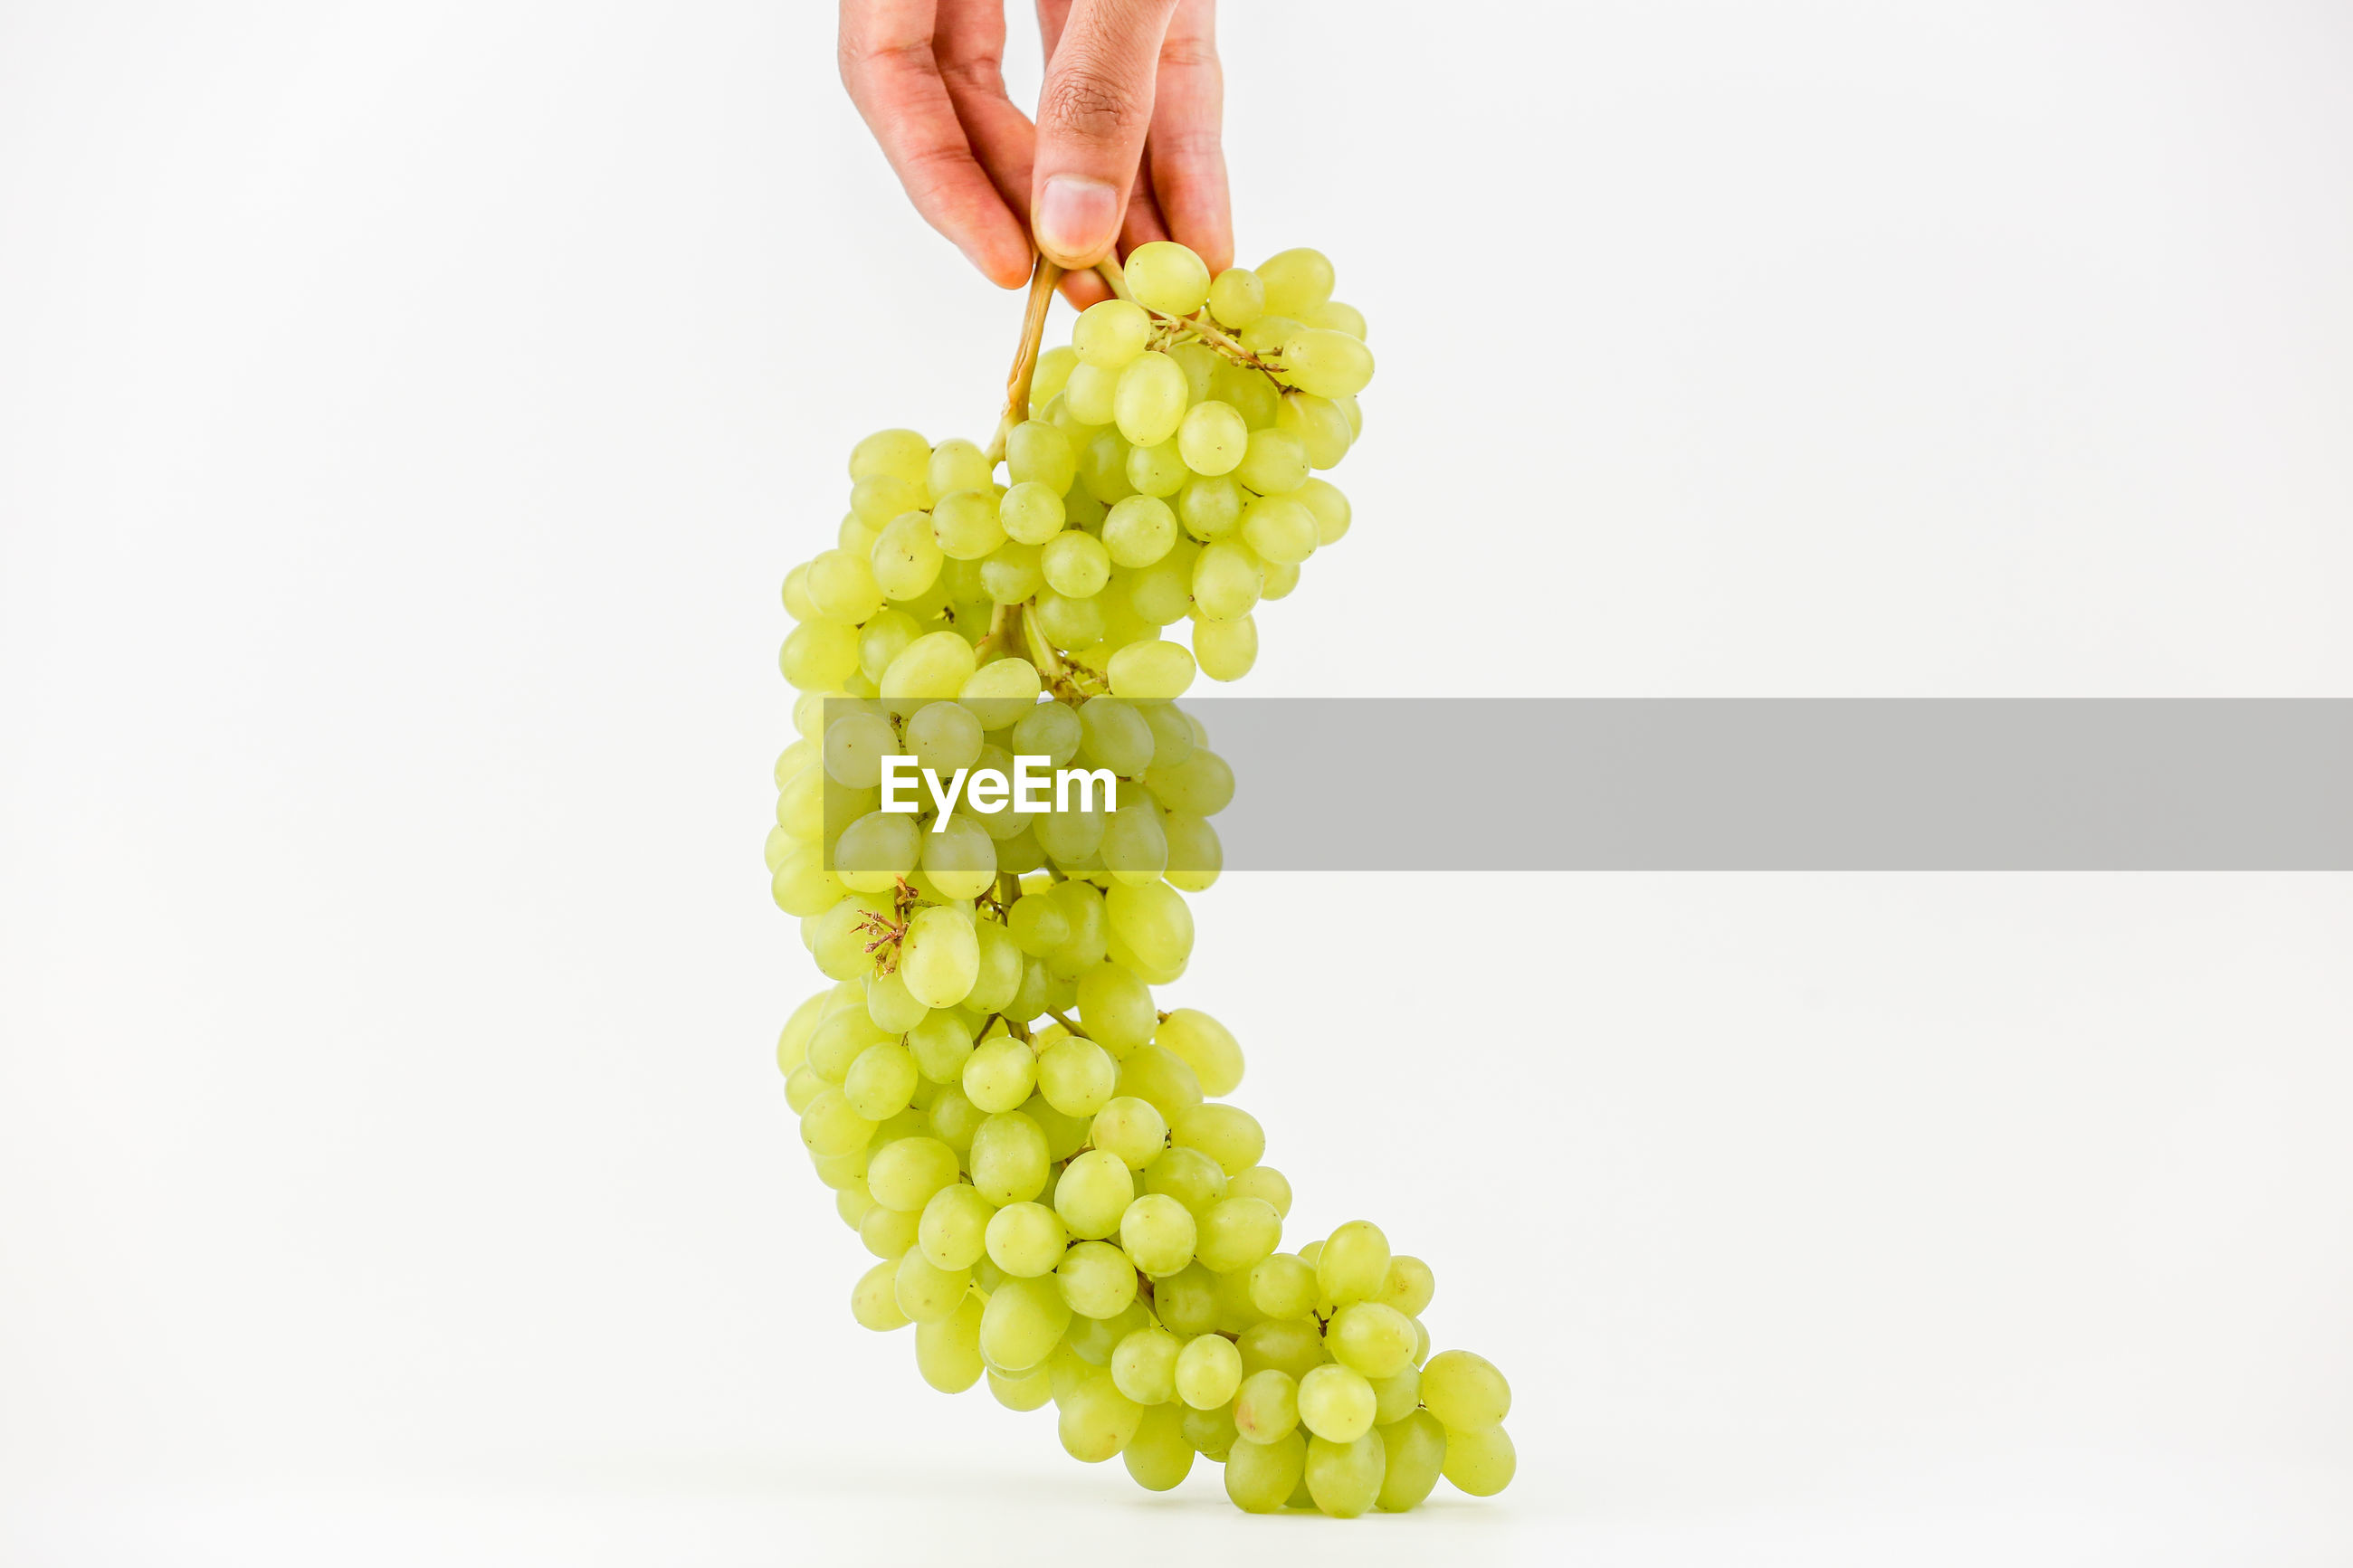 Midsection of person holding grapes against white background